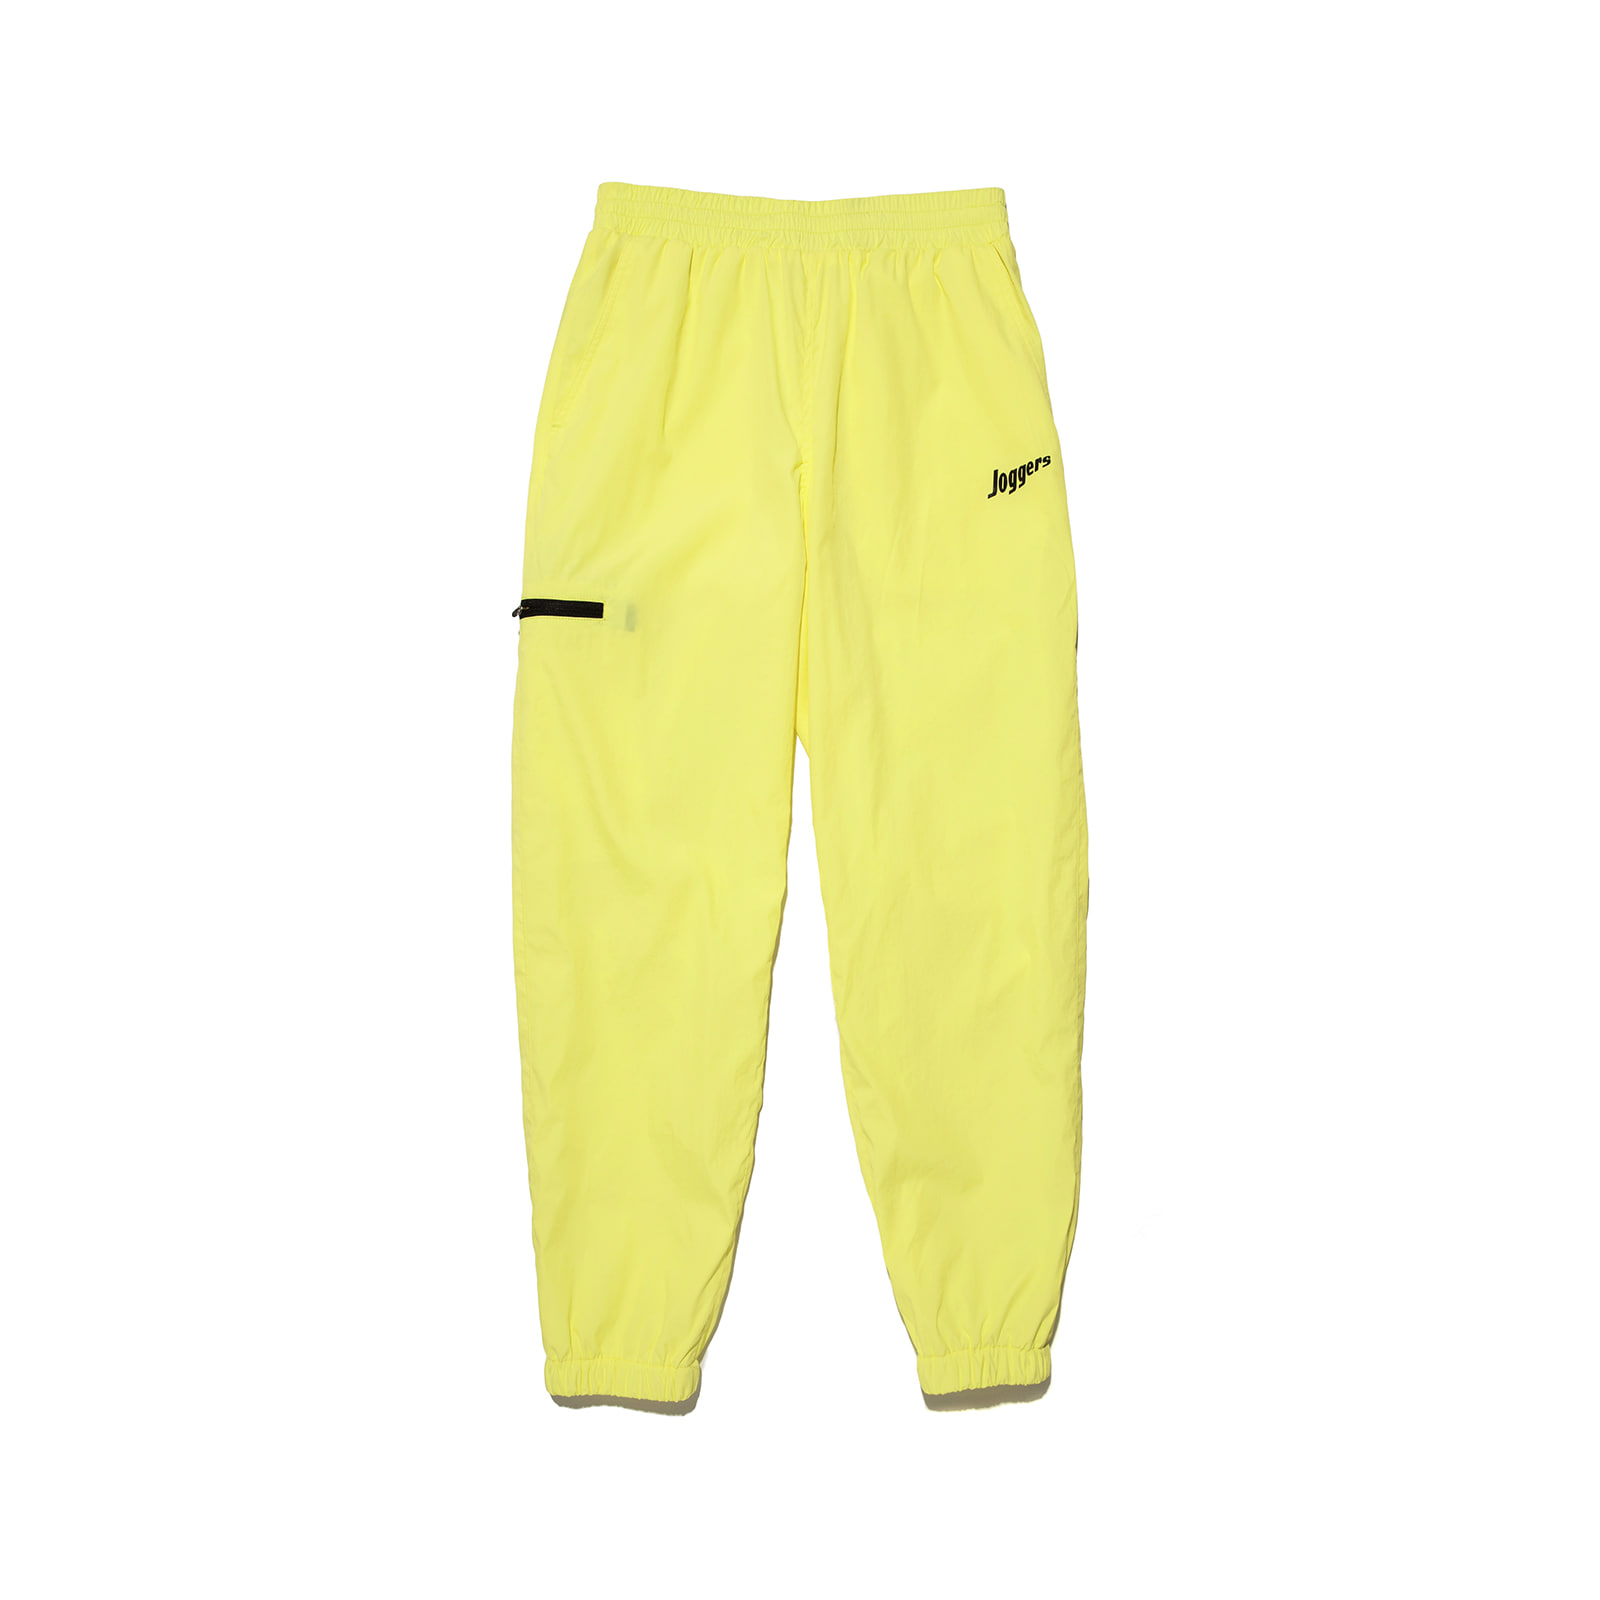 JOGGERS PANTS (L.YELLOW)